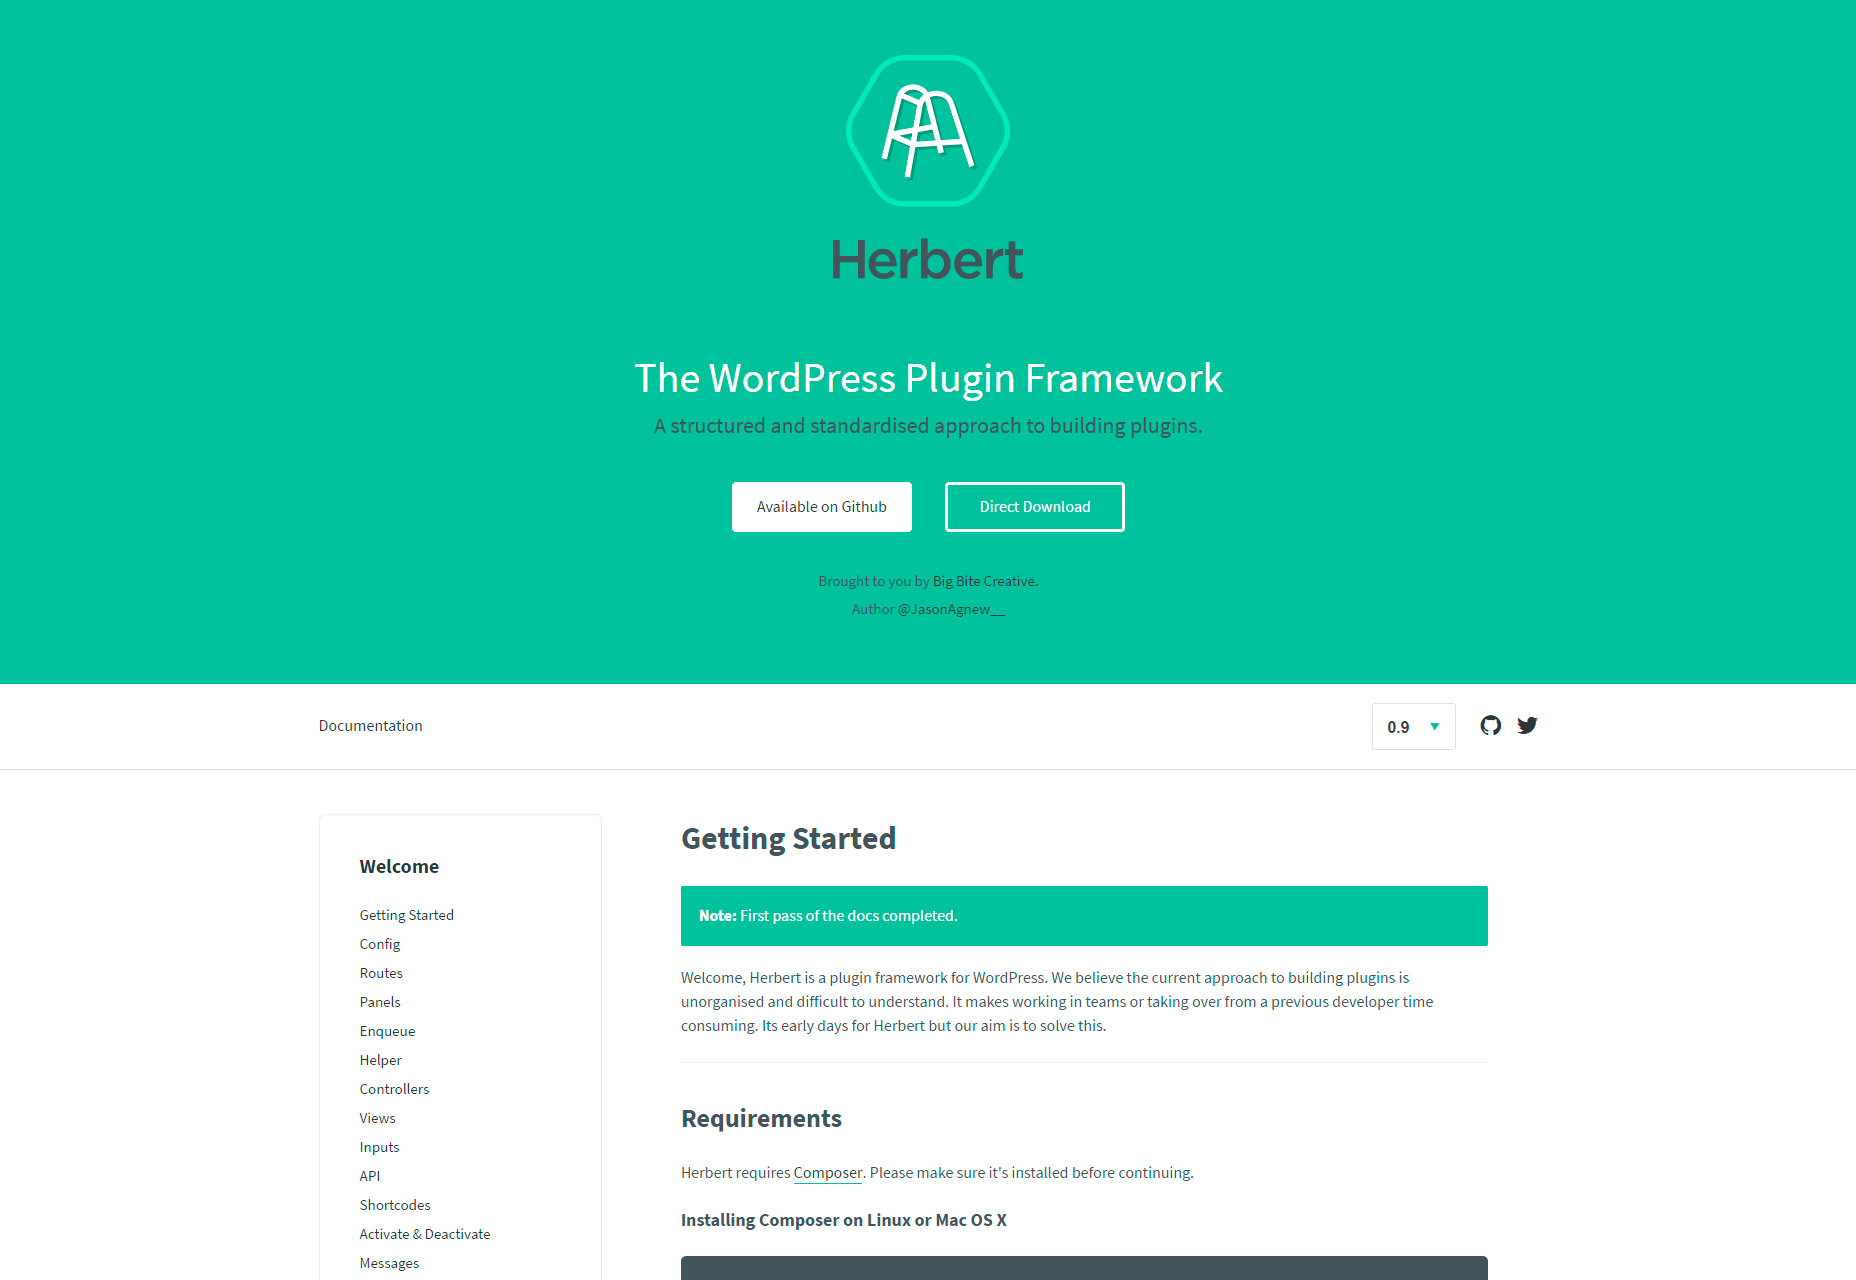 herbert-structured-wordpress-plugin-framework